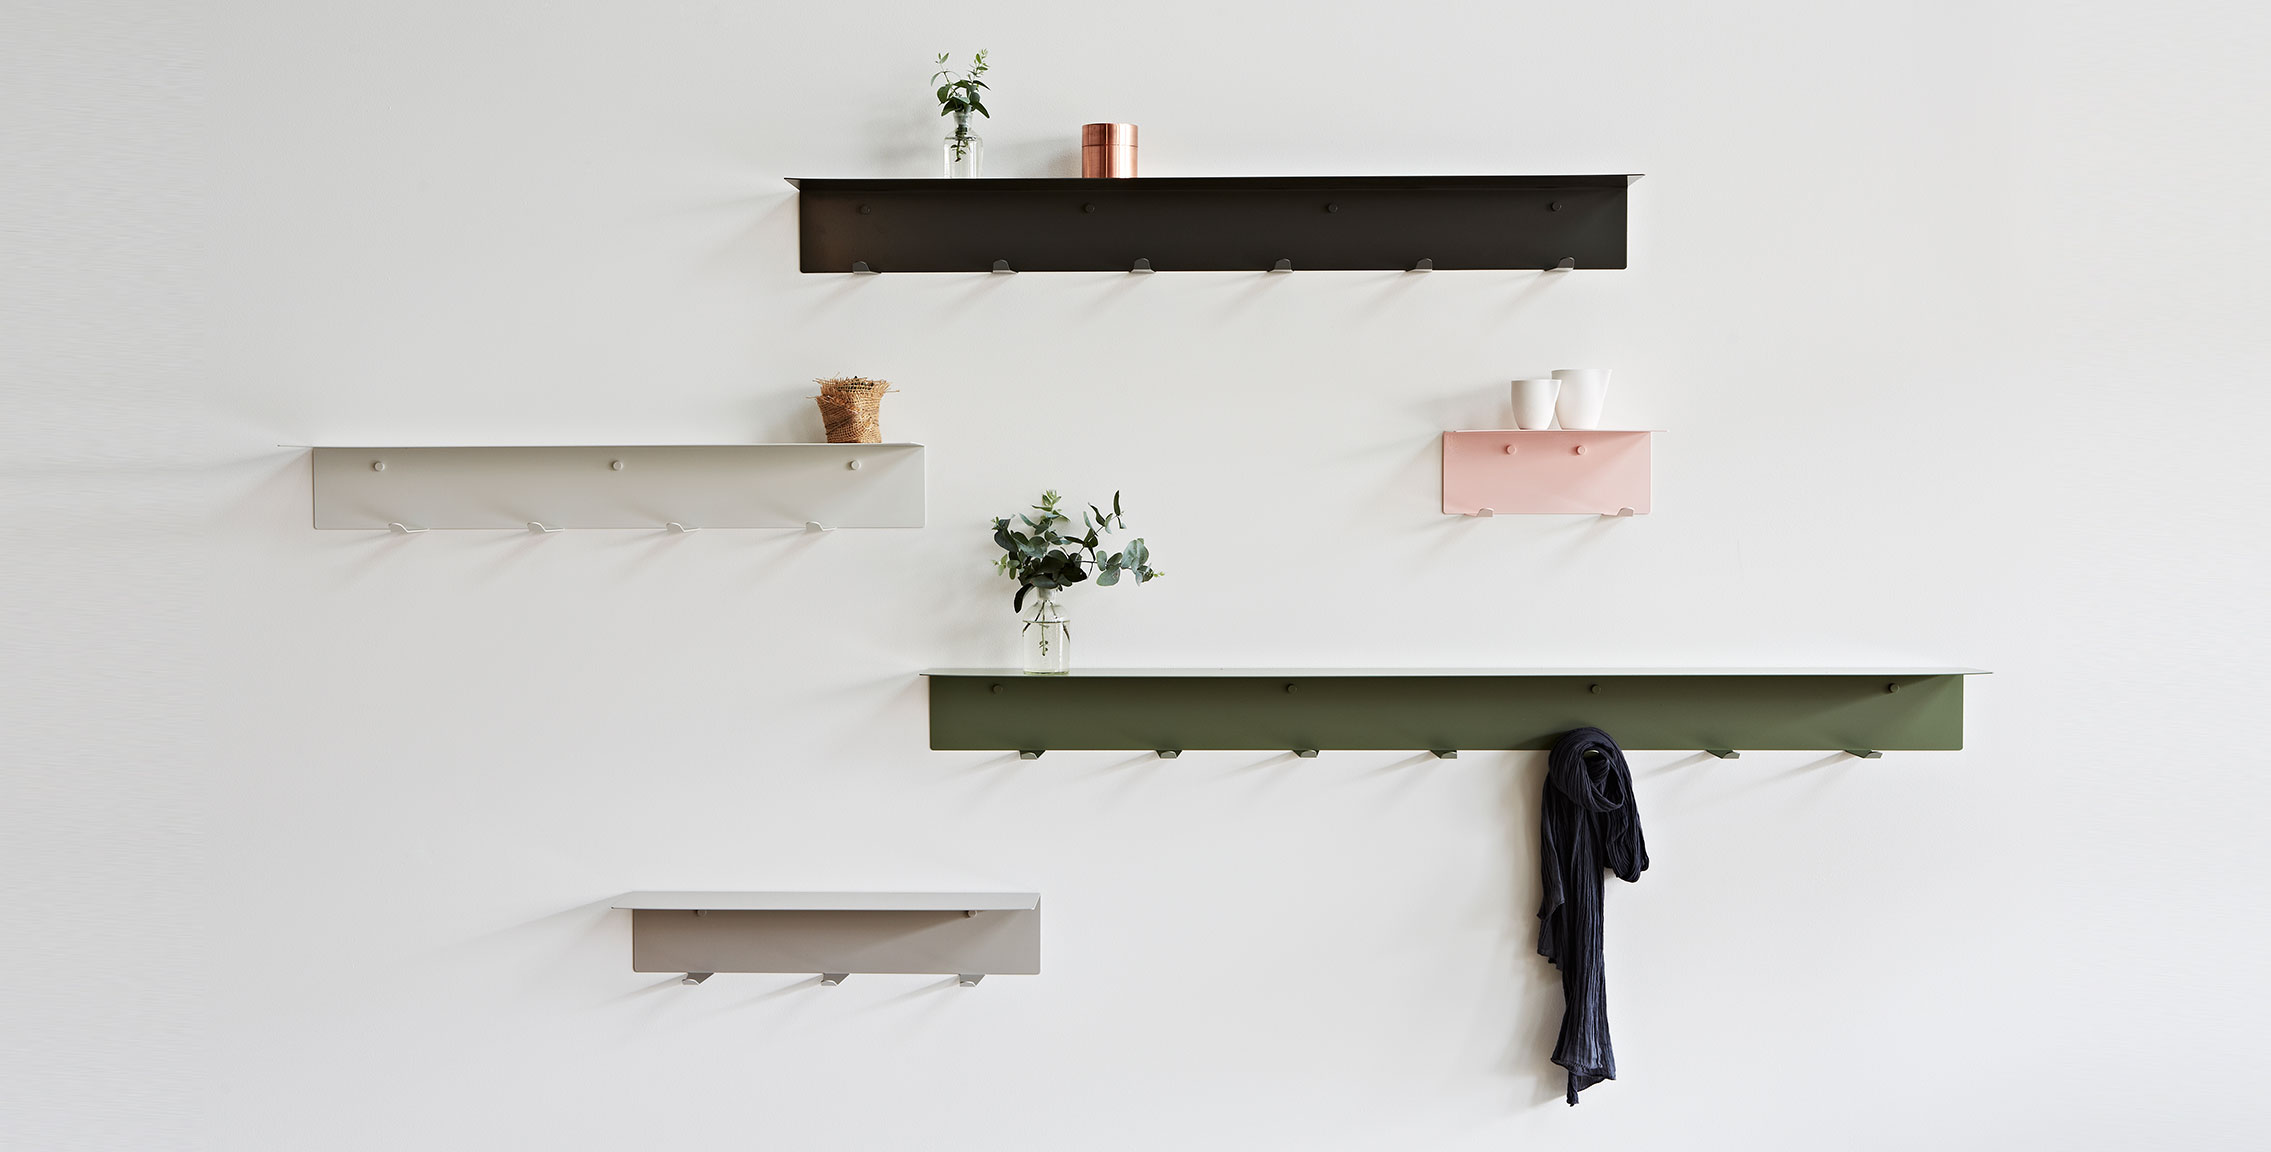 storage wall plane and clock hooks shelf products secret with retro comparment